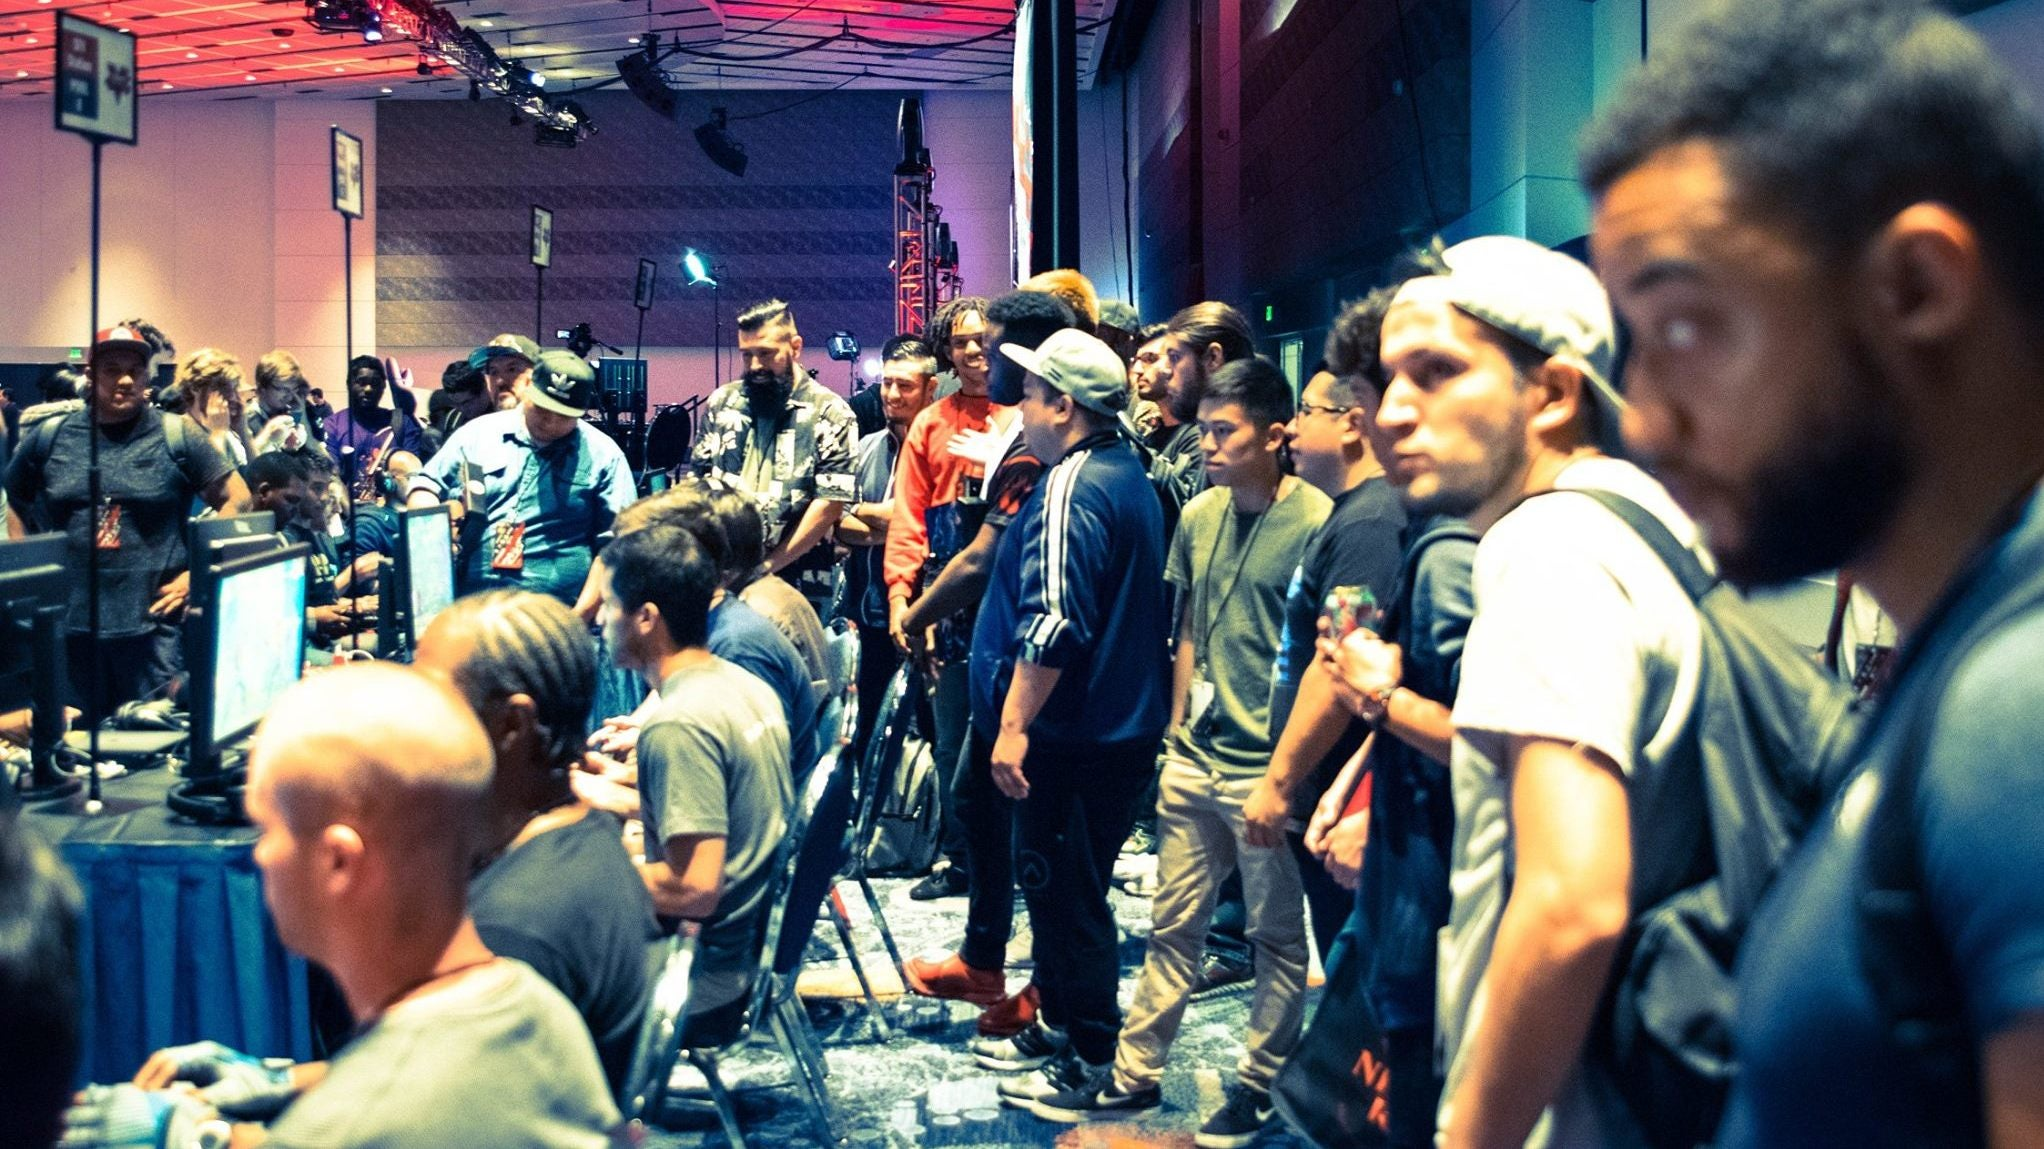 Fighting Game Tournament Offers Complicated Solution To Event Safety Concerns